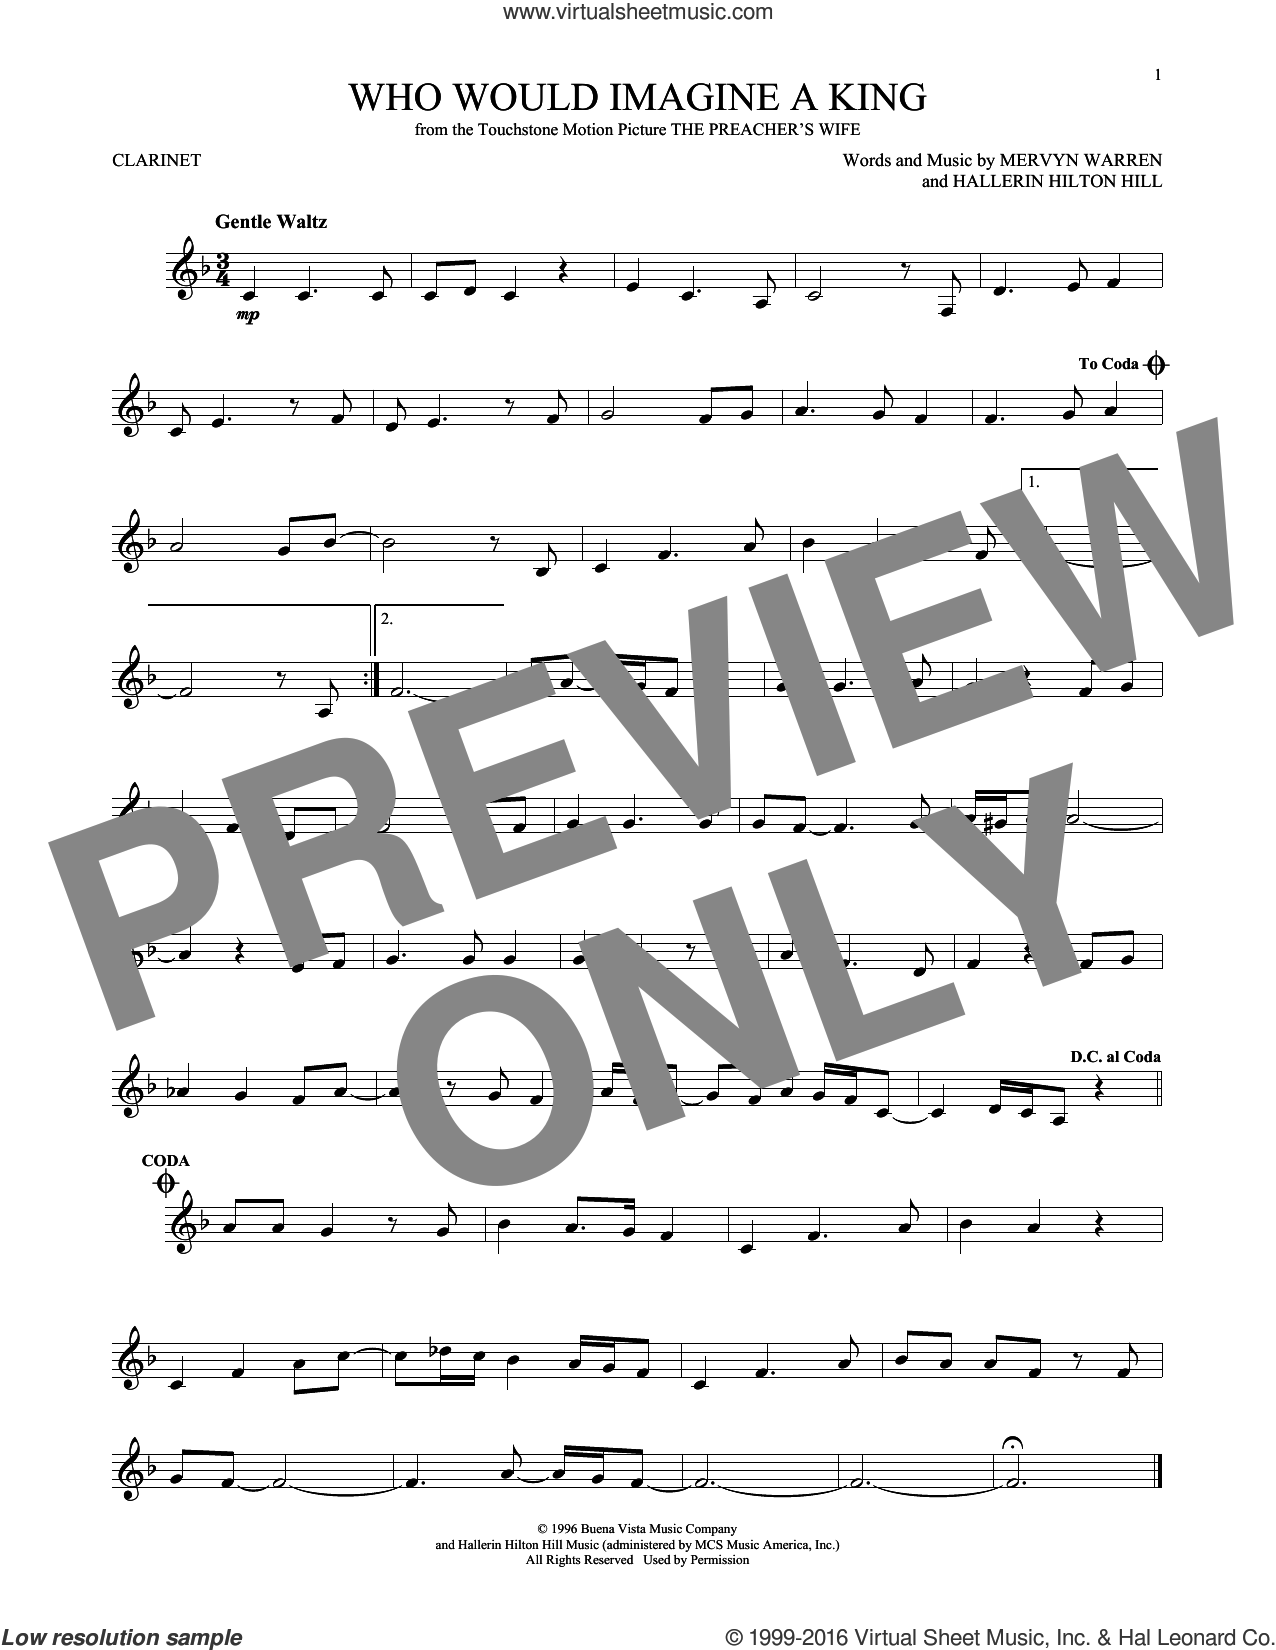 Who Would Imagine A King sheet music for clarinet solo by Whitney Houston, Hallerin Hilton Hill and Mervyn Warren, intermediate skill level